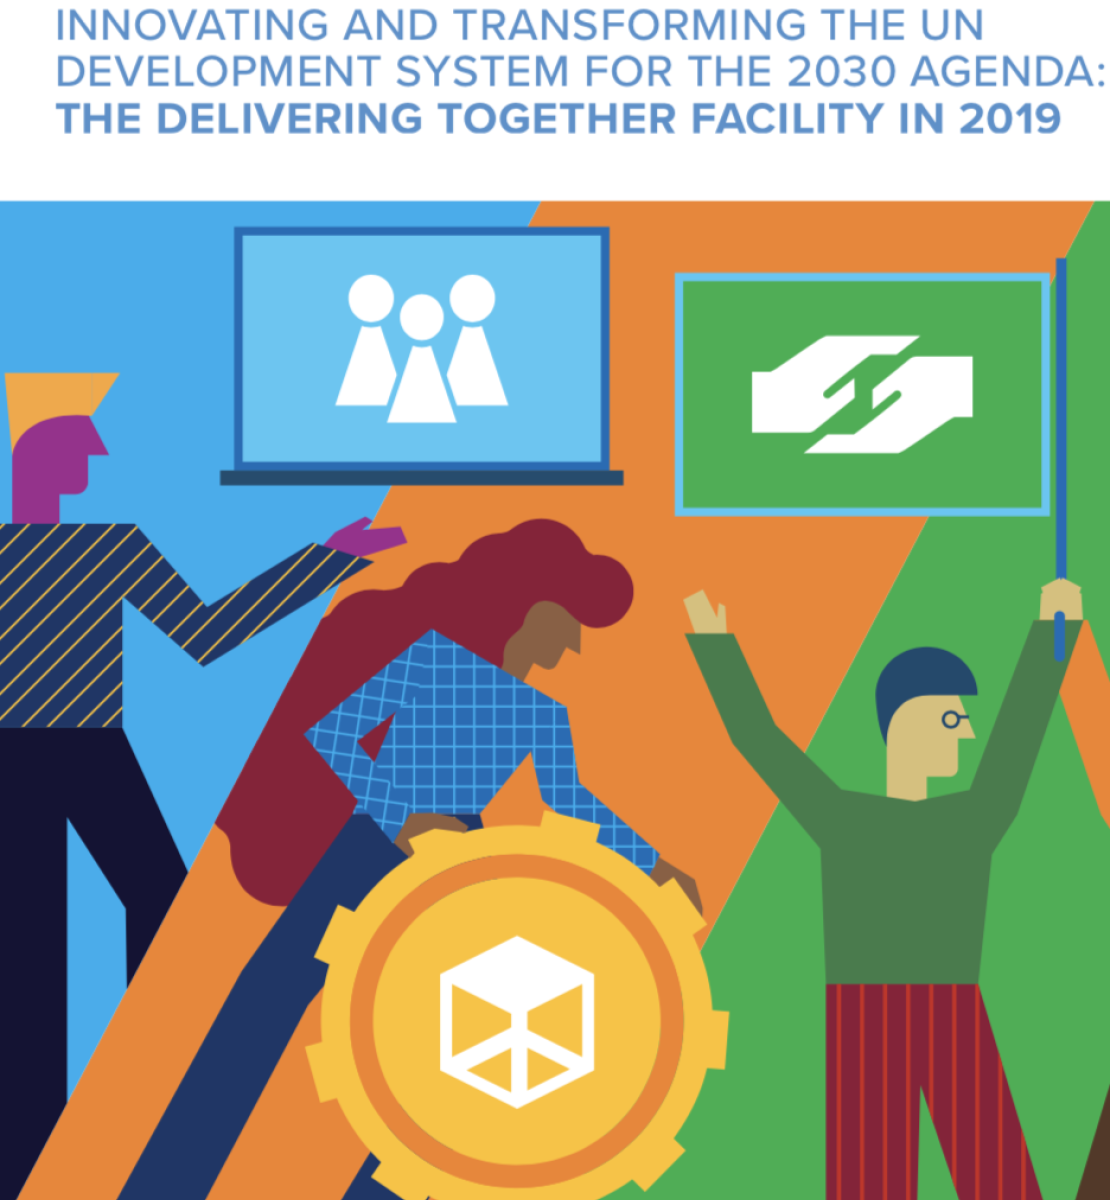 """Cover shows colouful animated people holding symbols of working together with the title, """"Innovating and Transforming the UN Development System for the 2030 Agenda: The Delivering Together Facility in 2019"""" just above."""